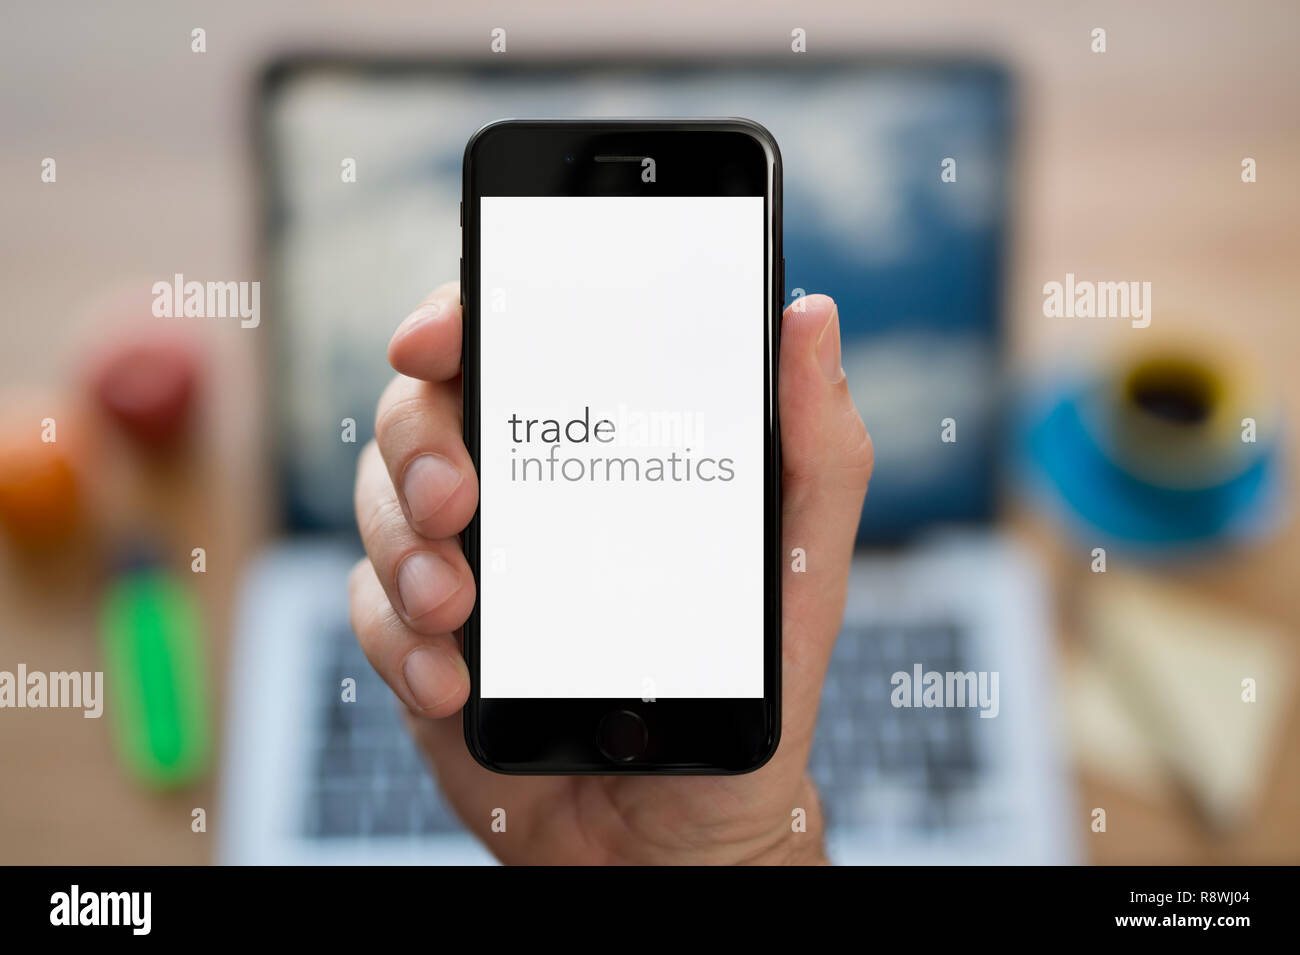 A man looks at his iPhone which displays the Trade Informatics logo (Editorial use only). - Stock Image